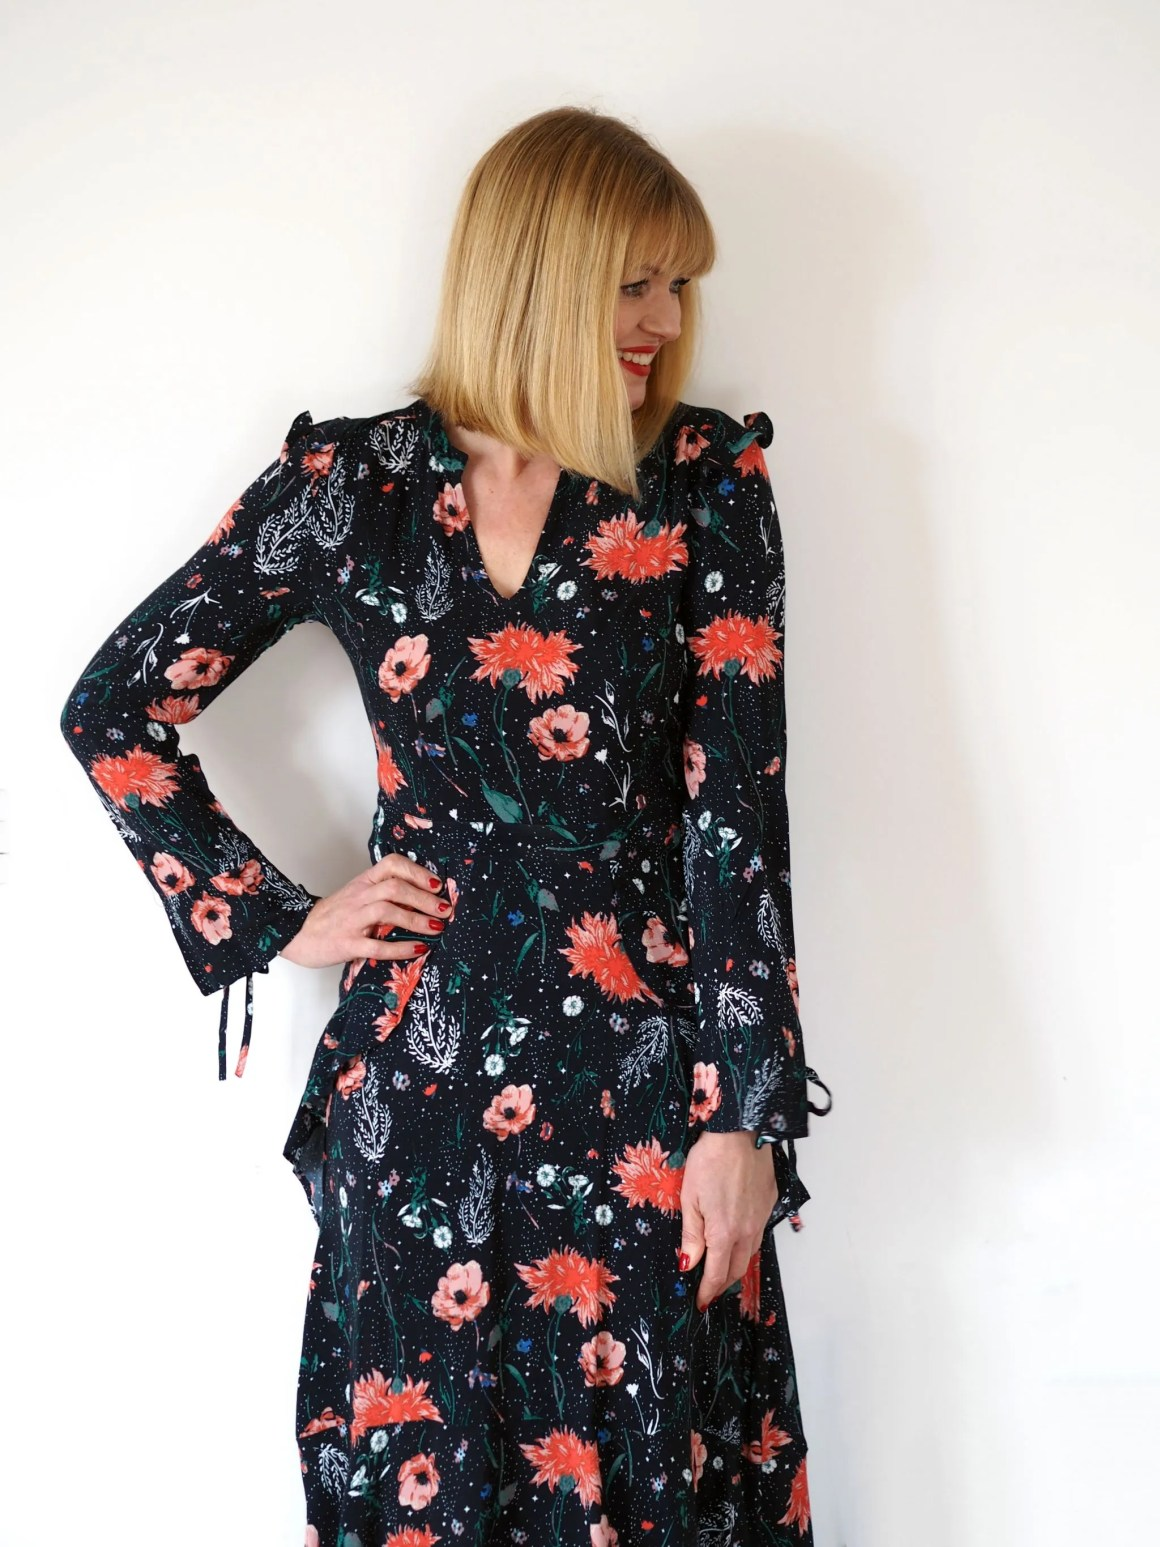 what-lizzy-loves-floral-midi-dress-Nine-Debenhams-Savannah-Miller